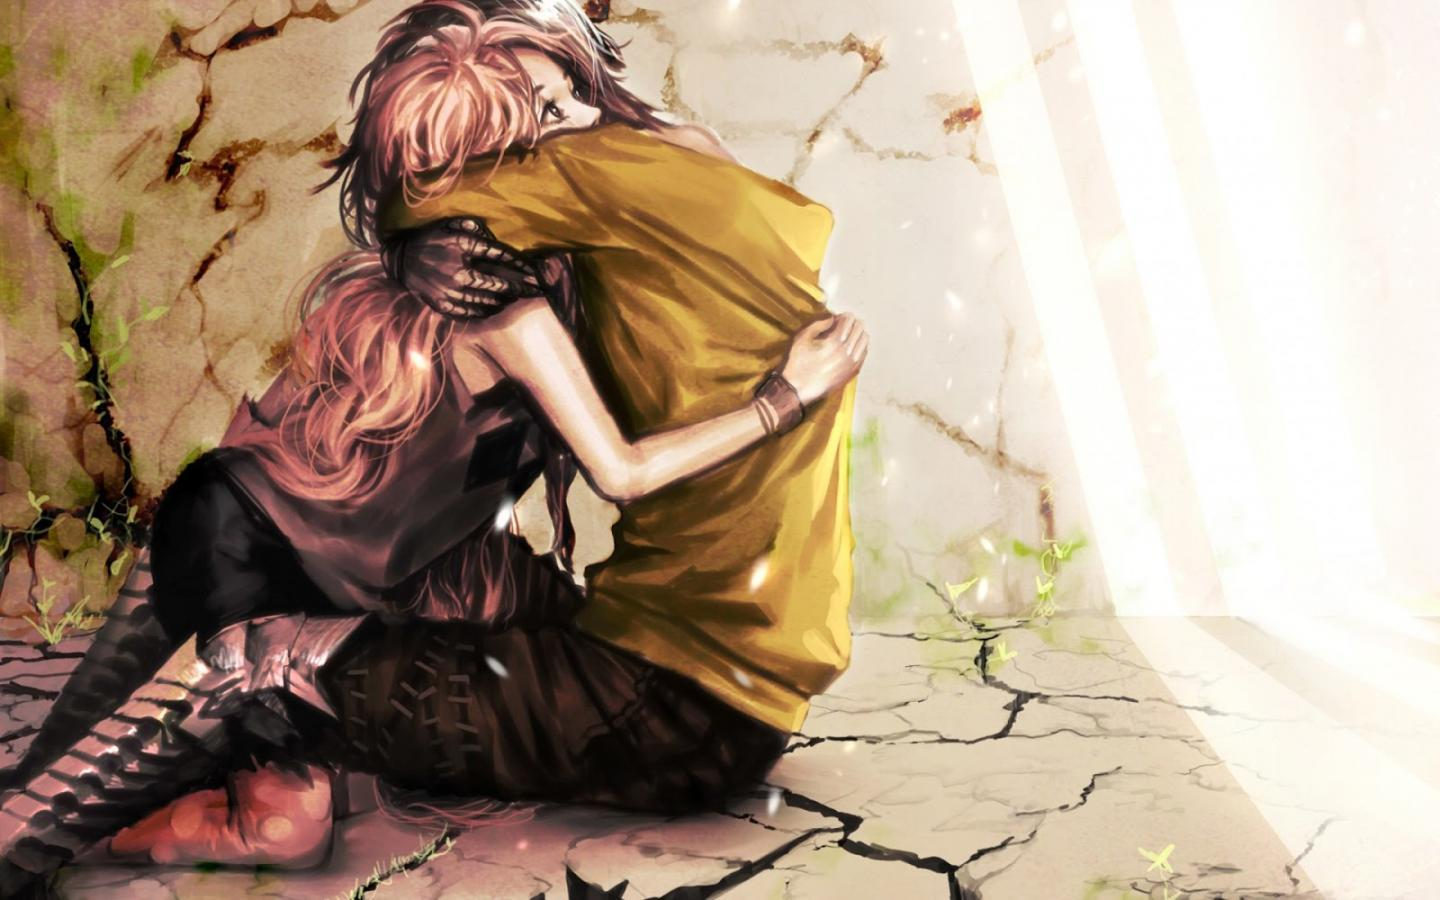 Boy And Girl Anime Cute Wallpapers Wallpaper Cave